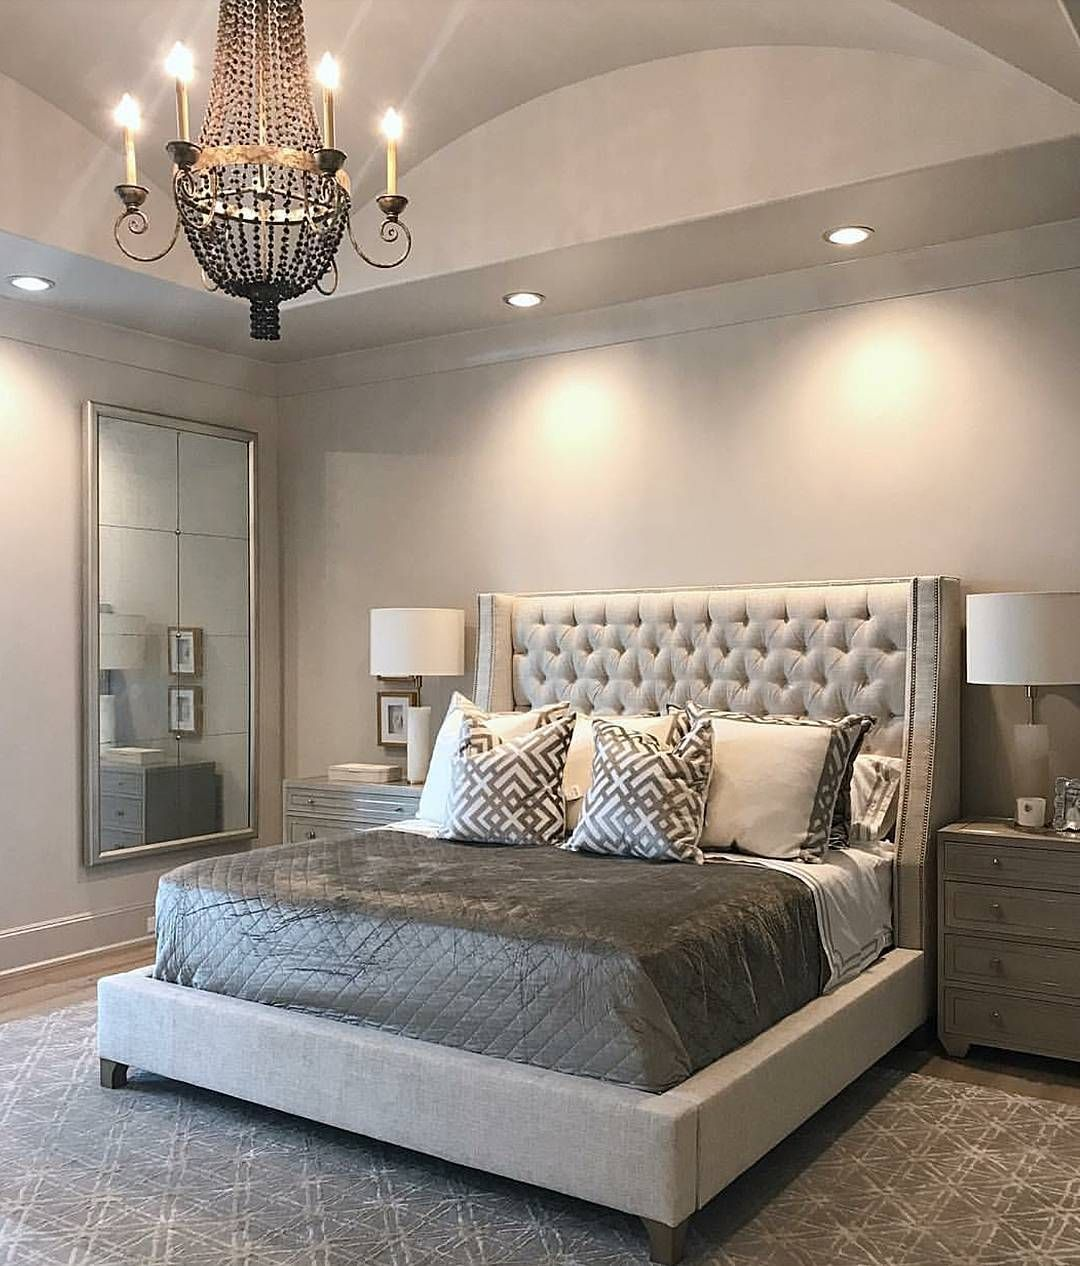 40 Gorgeous Small Master Bedroom Ideas In 2021 Decor Inspirations Grey Bedroom Decor Simple Bedroom Small Master Bedroom Master bedroom ideas 2020